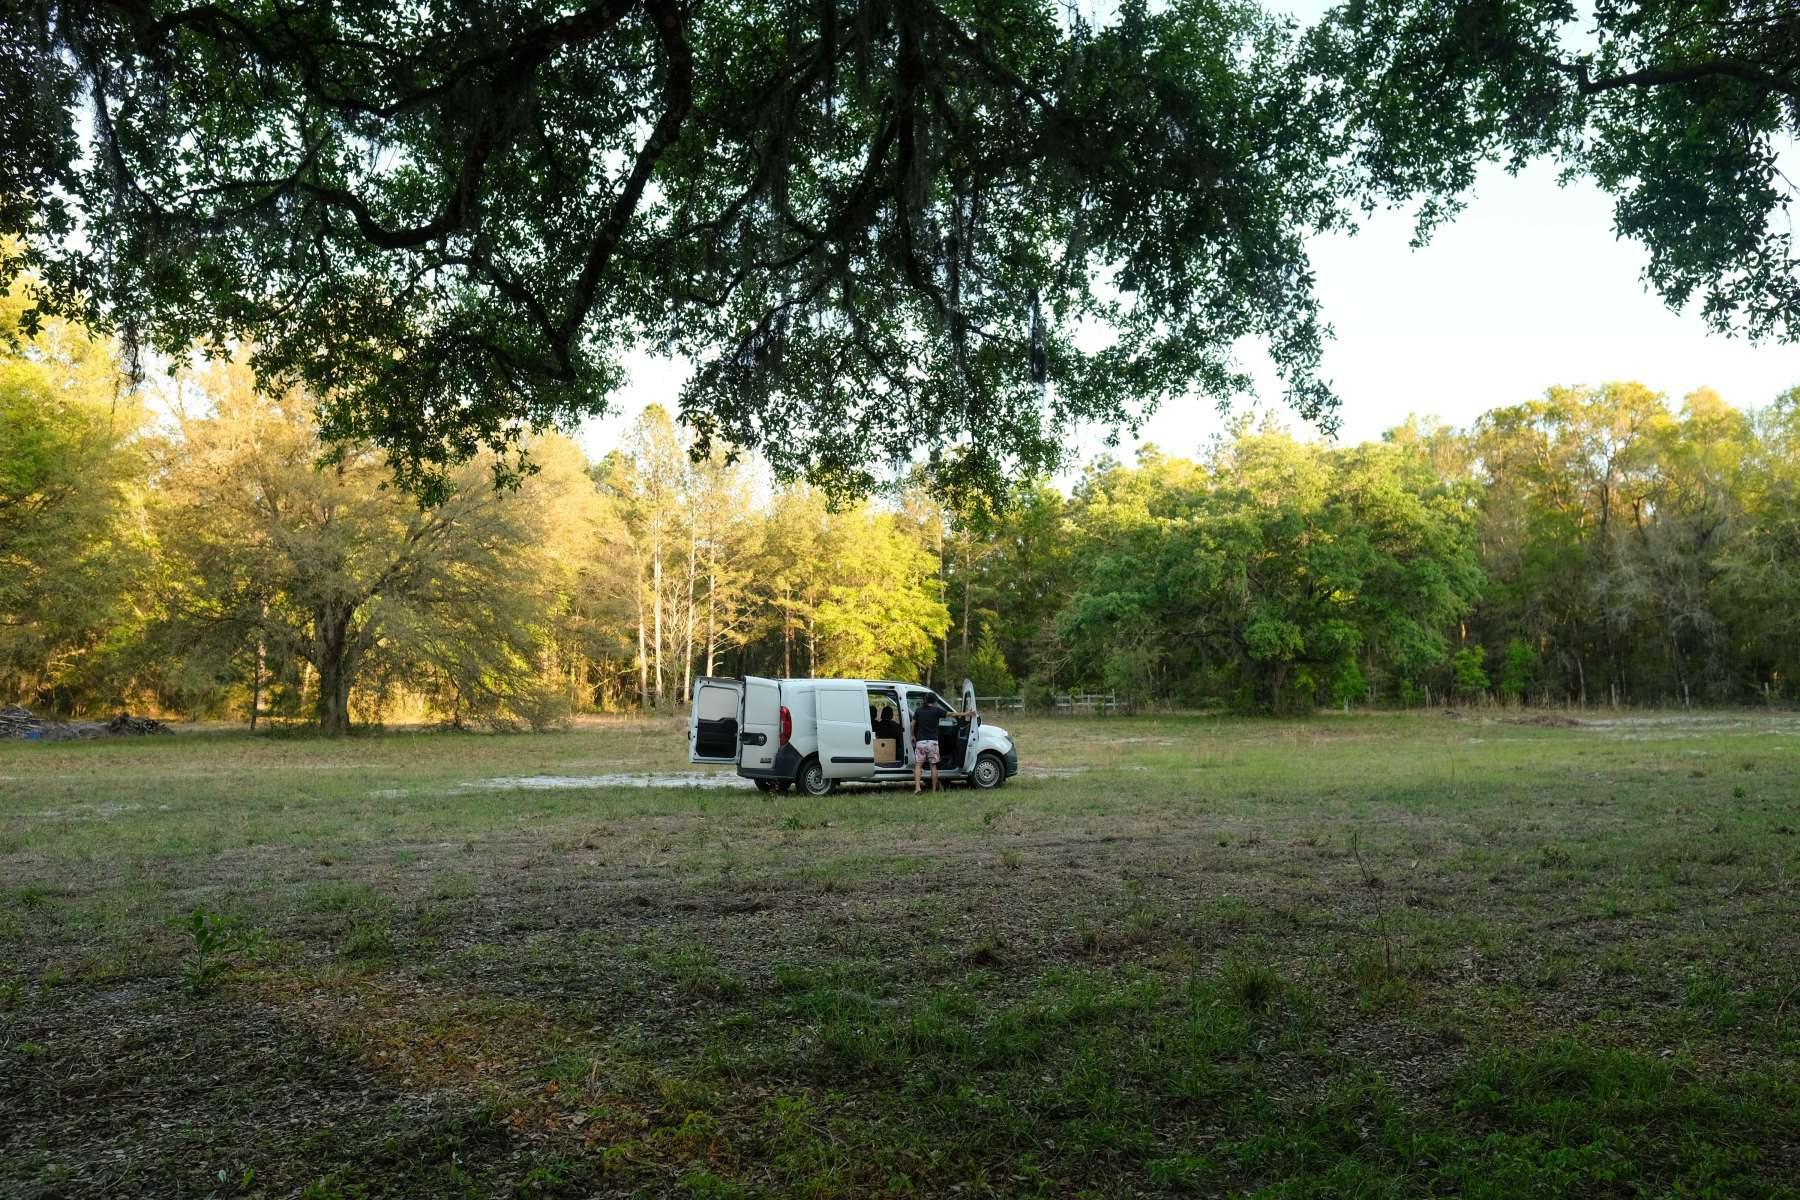 Camp Rv At Shadygrovepreserve Shady Grove Preserve Fl 2